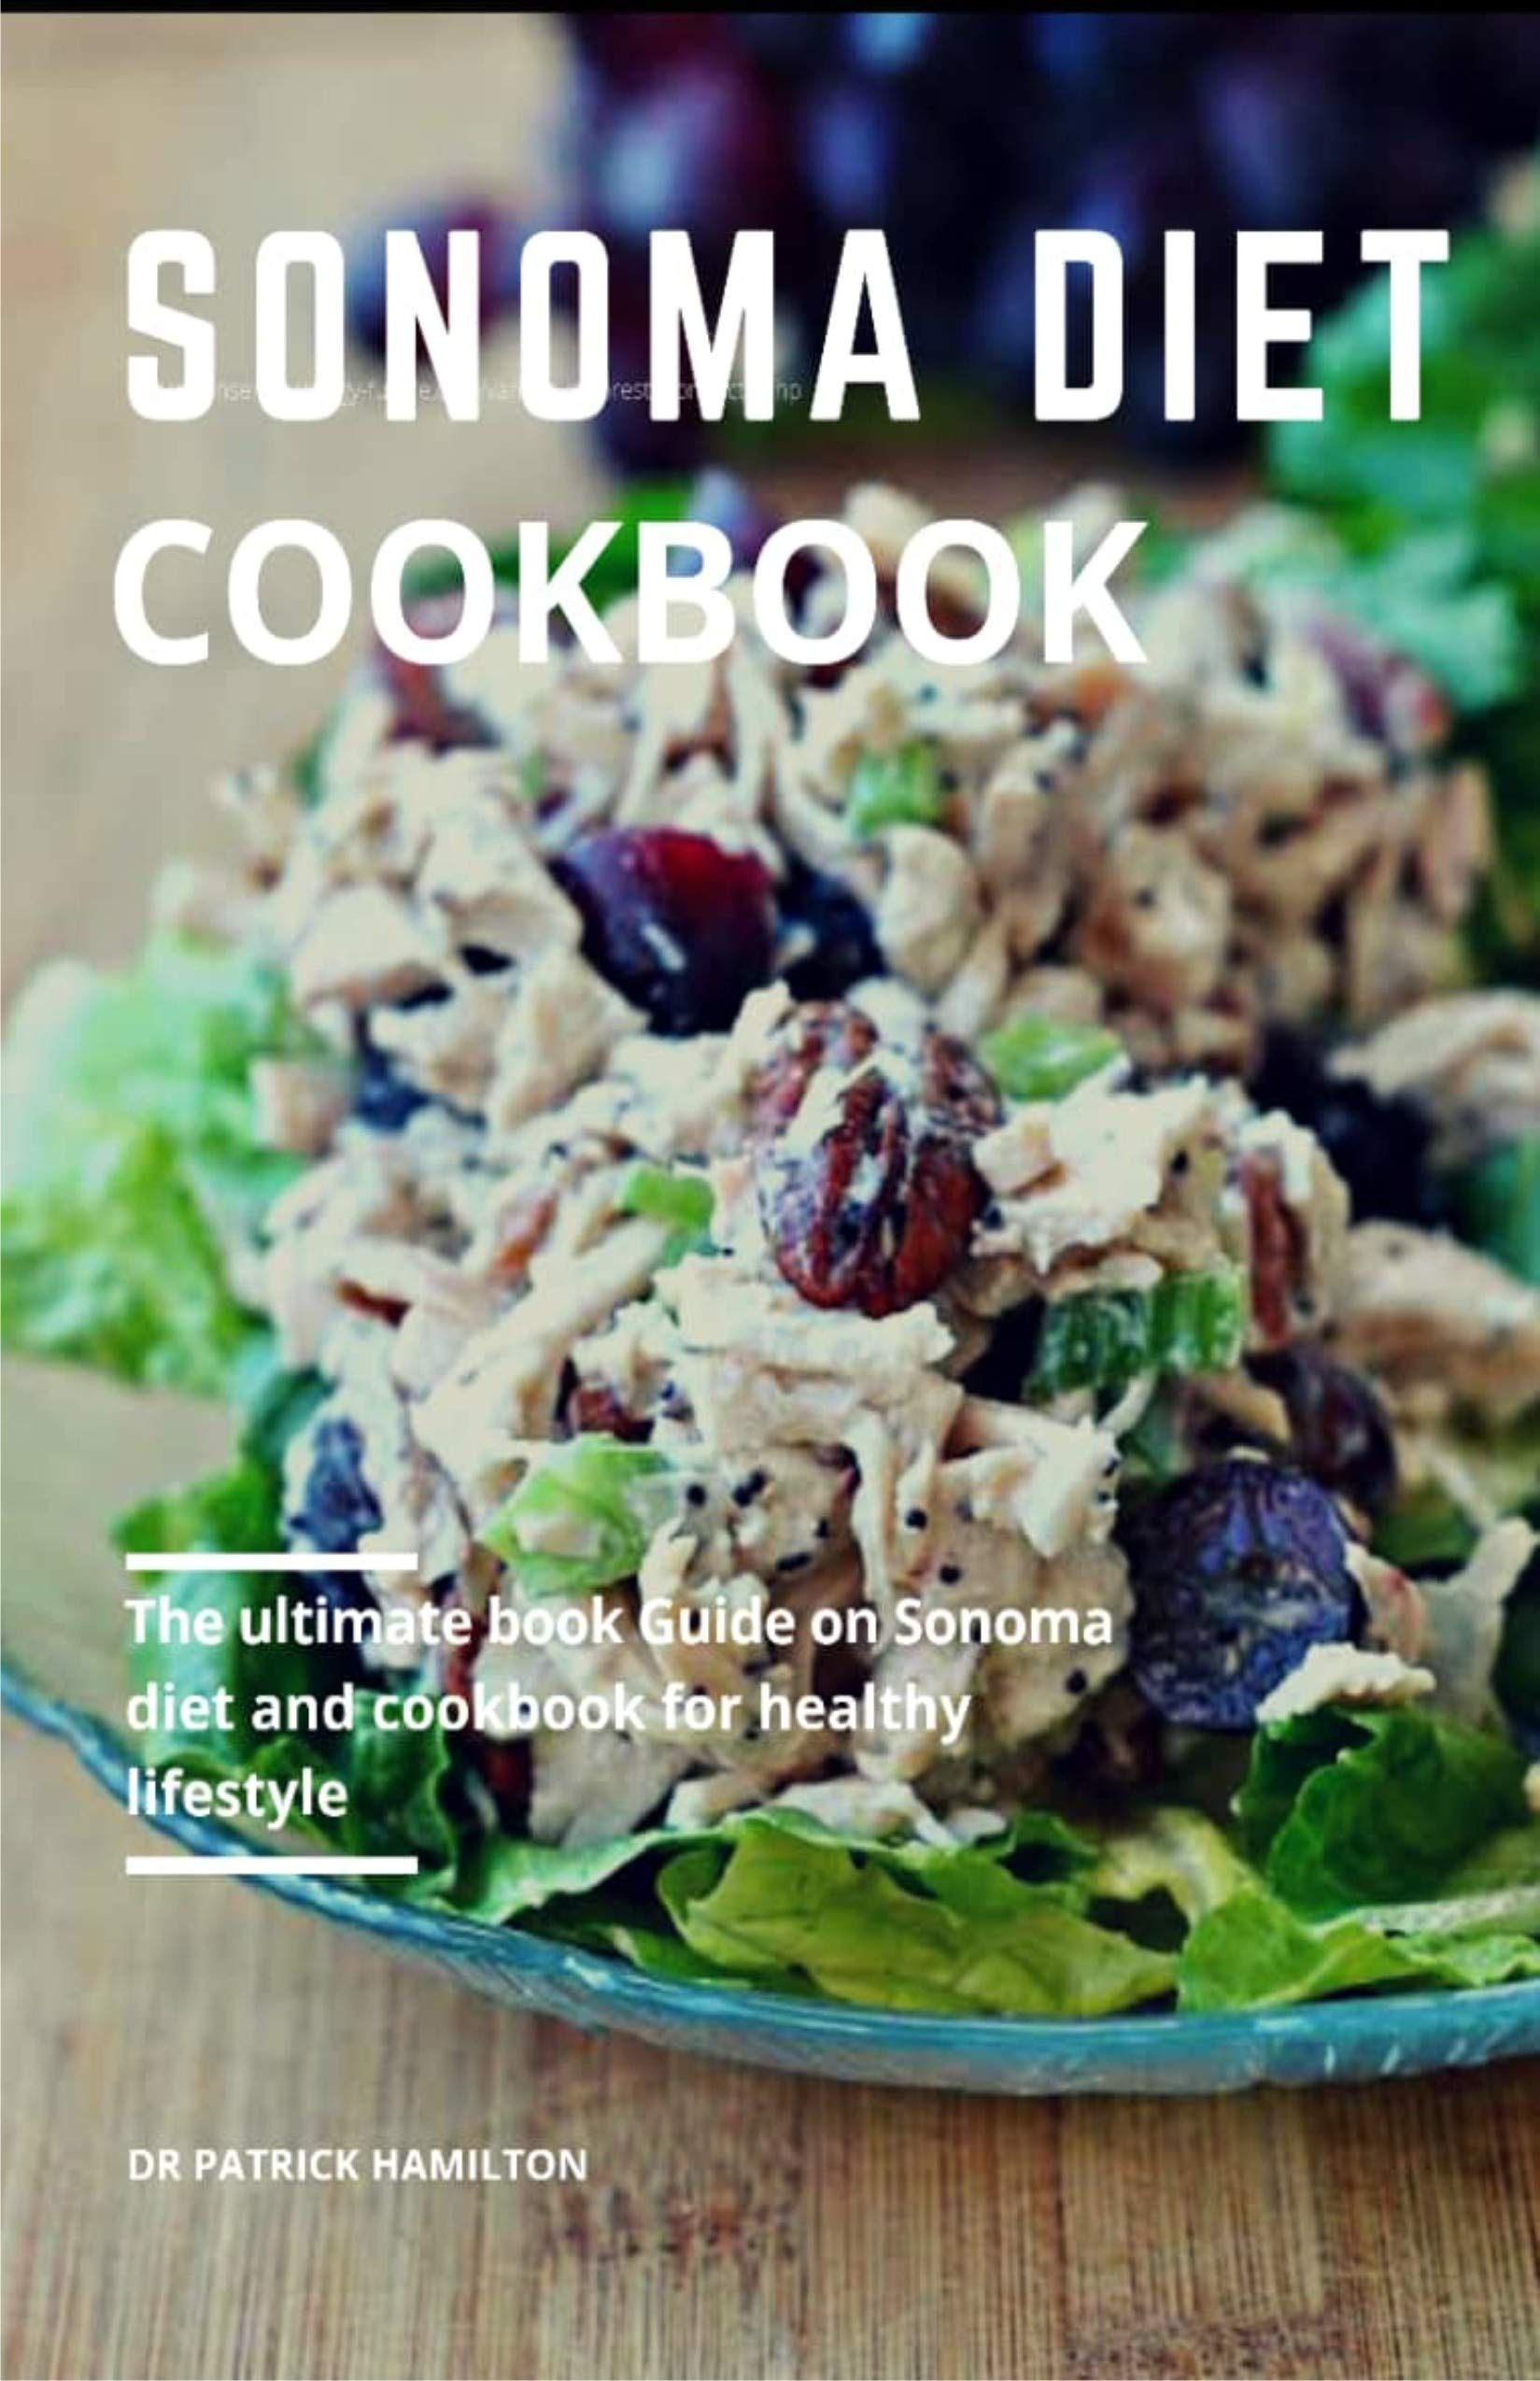 SONOMA DIET COOKBOOK: The ultimate book guide on sonoma diet and cookbook for healthy lifestyle